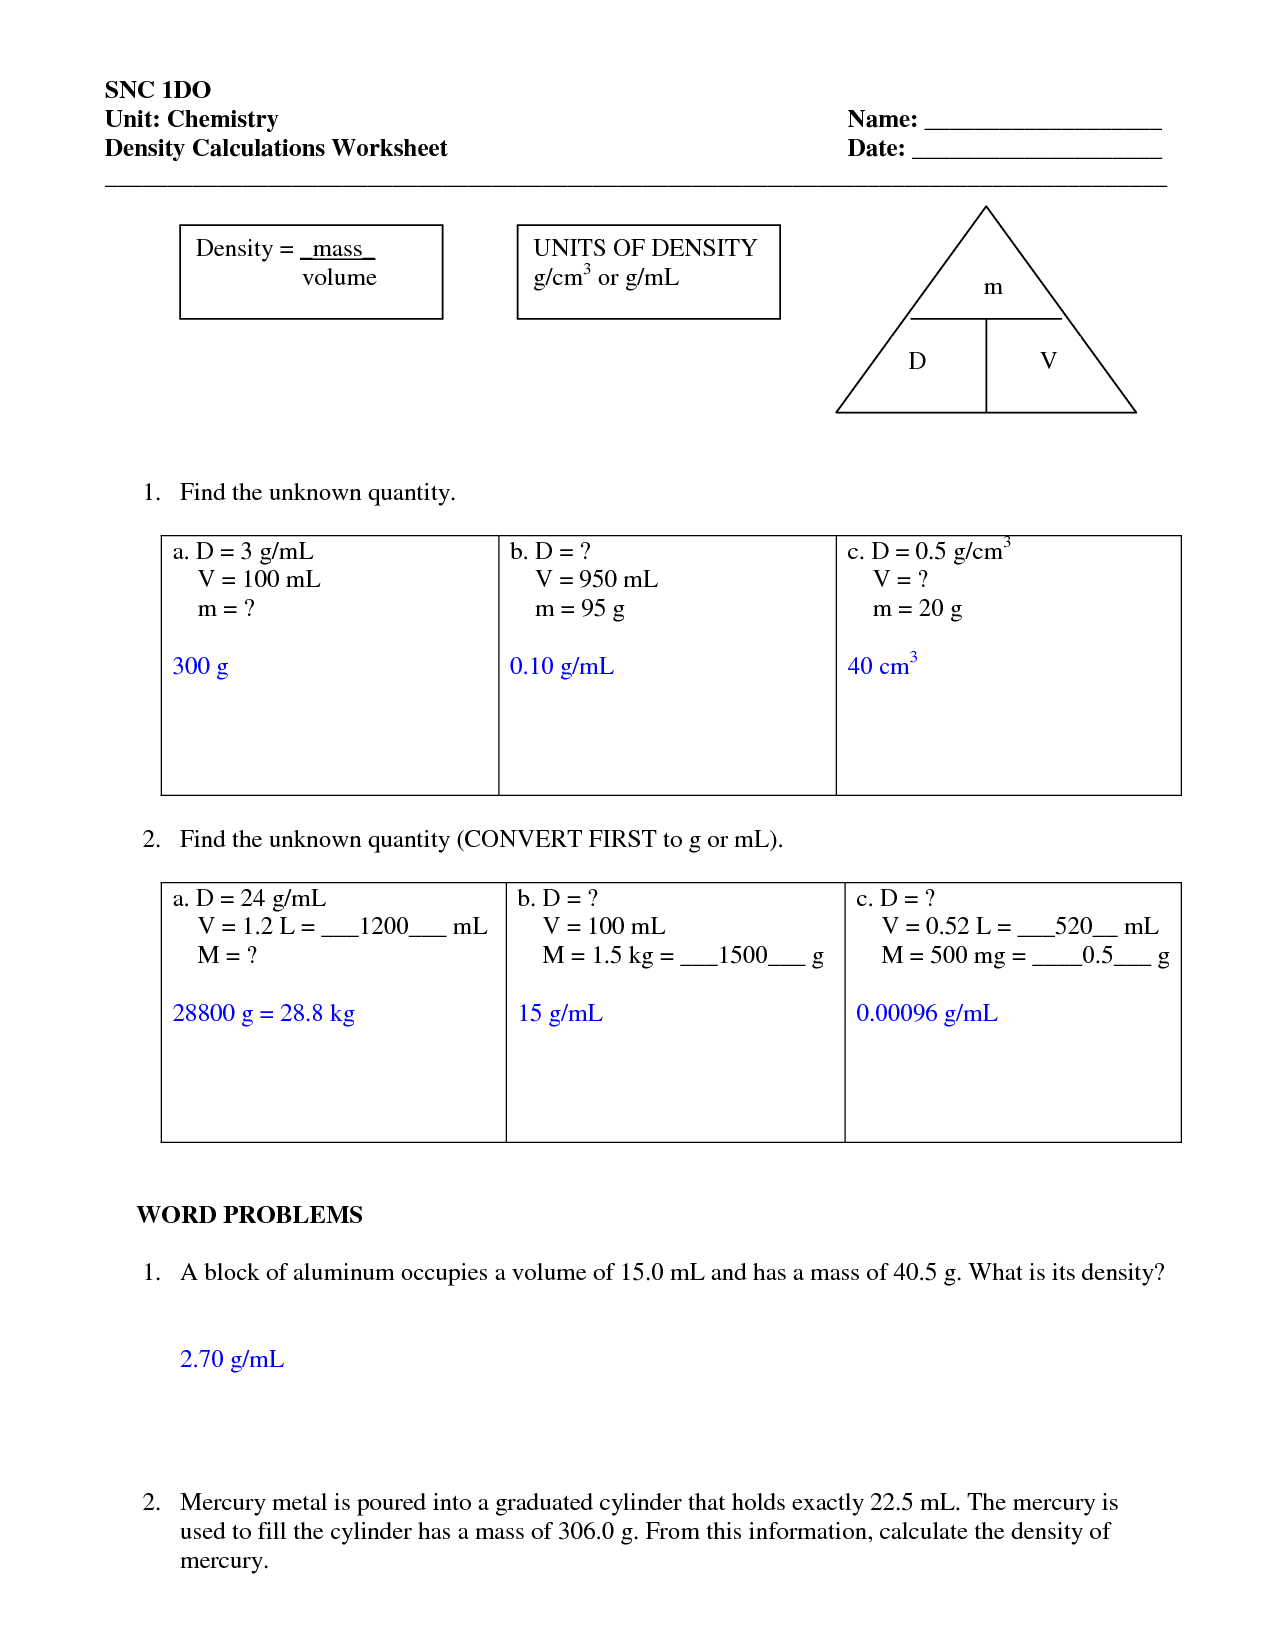 Science 8 Density Calculations Worksheet